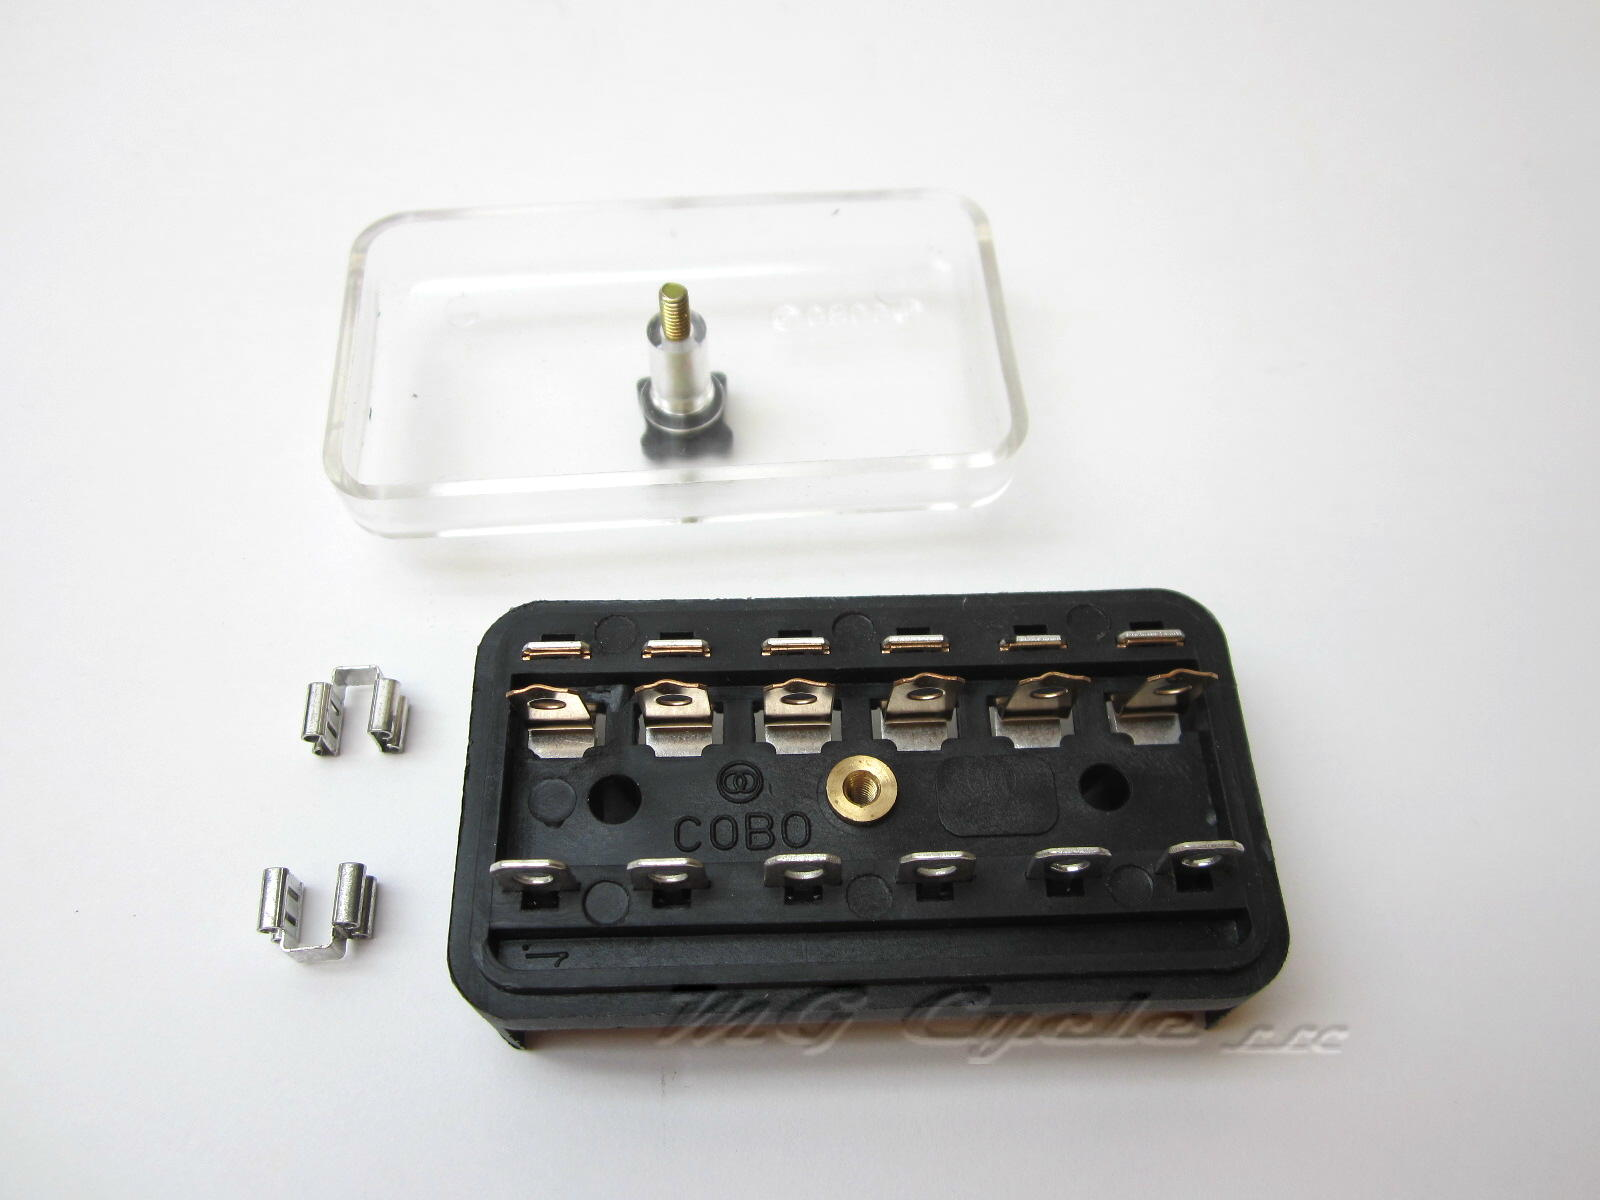 Wiring Mg Cycle Moto Guzzi Parts And Accessories Available Online International Fuse Box Connector With Cover